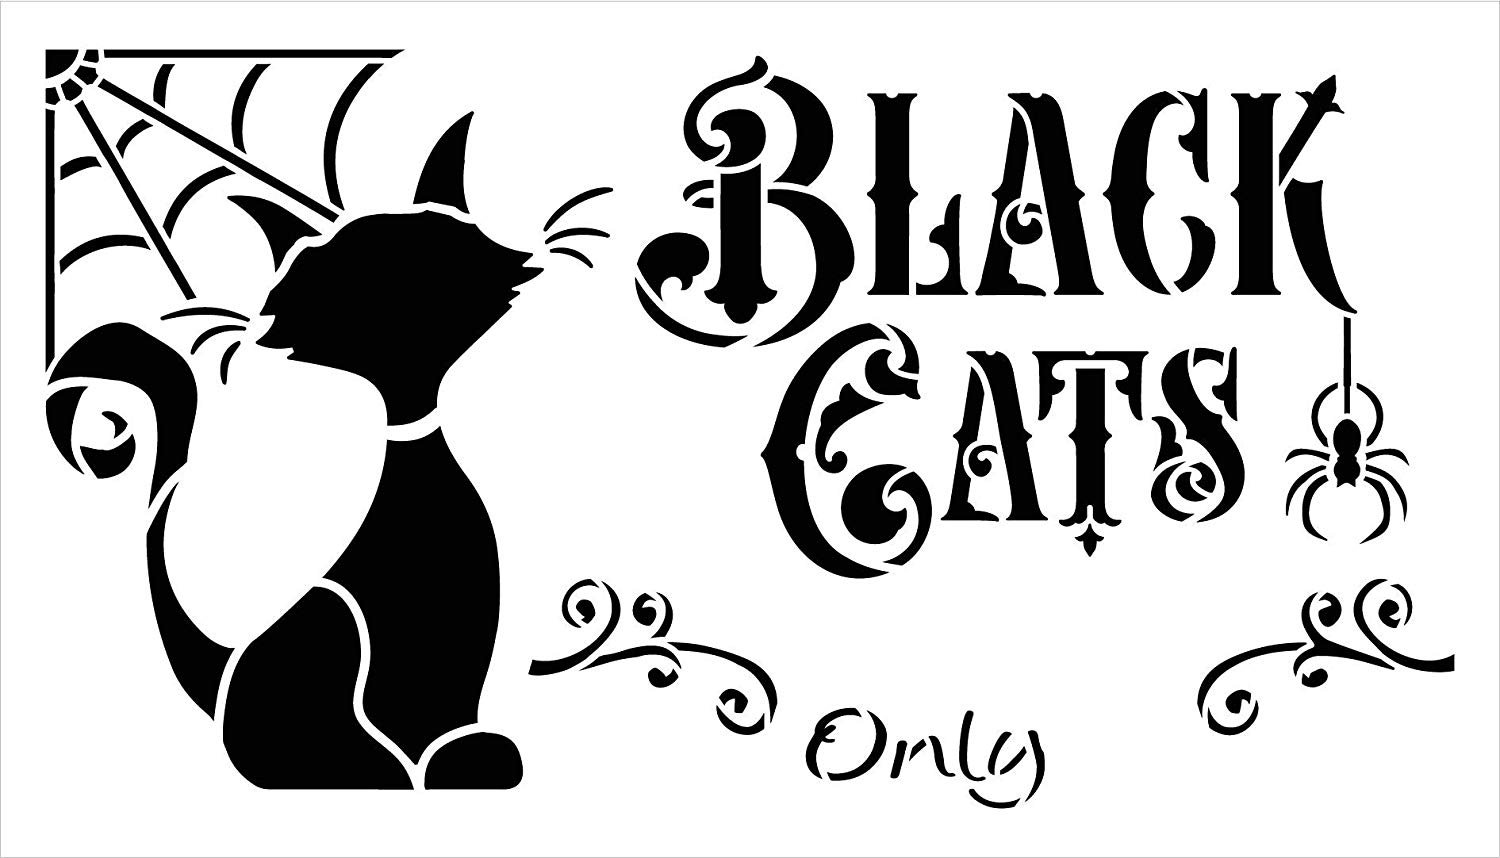 Black Cats Only Stencil with Spider Web by StudioR12   DIY Halloween Home Decor   Paint Wood Signs   Reusable Template   Select Size (26.25 x 15 inch)